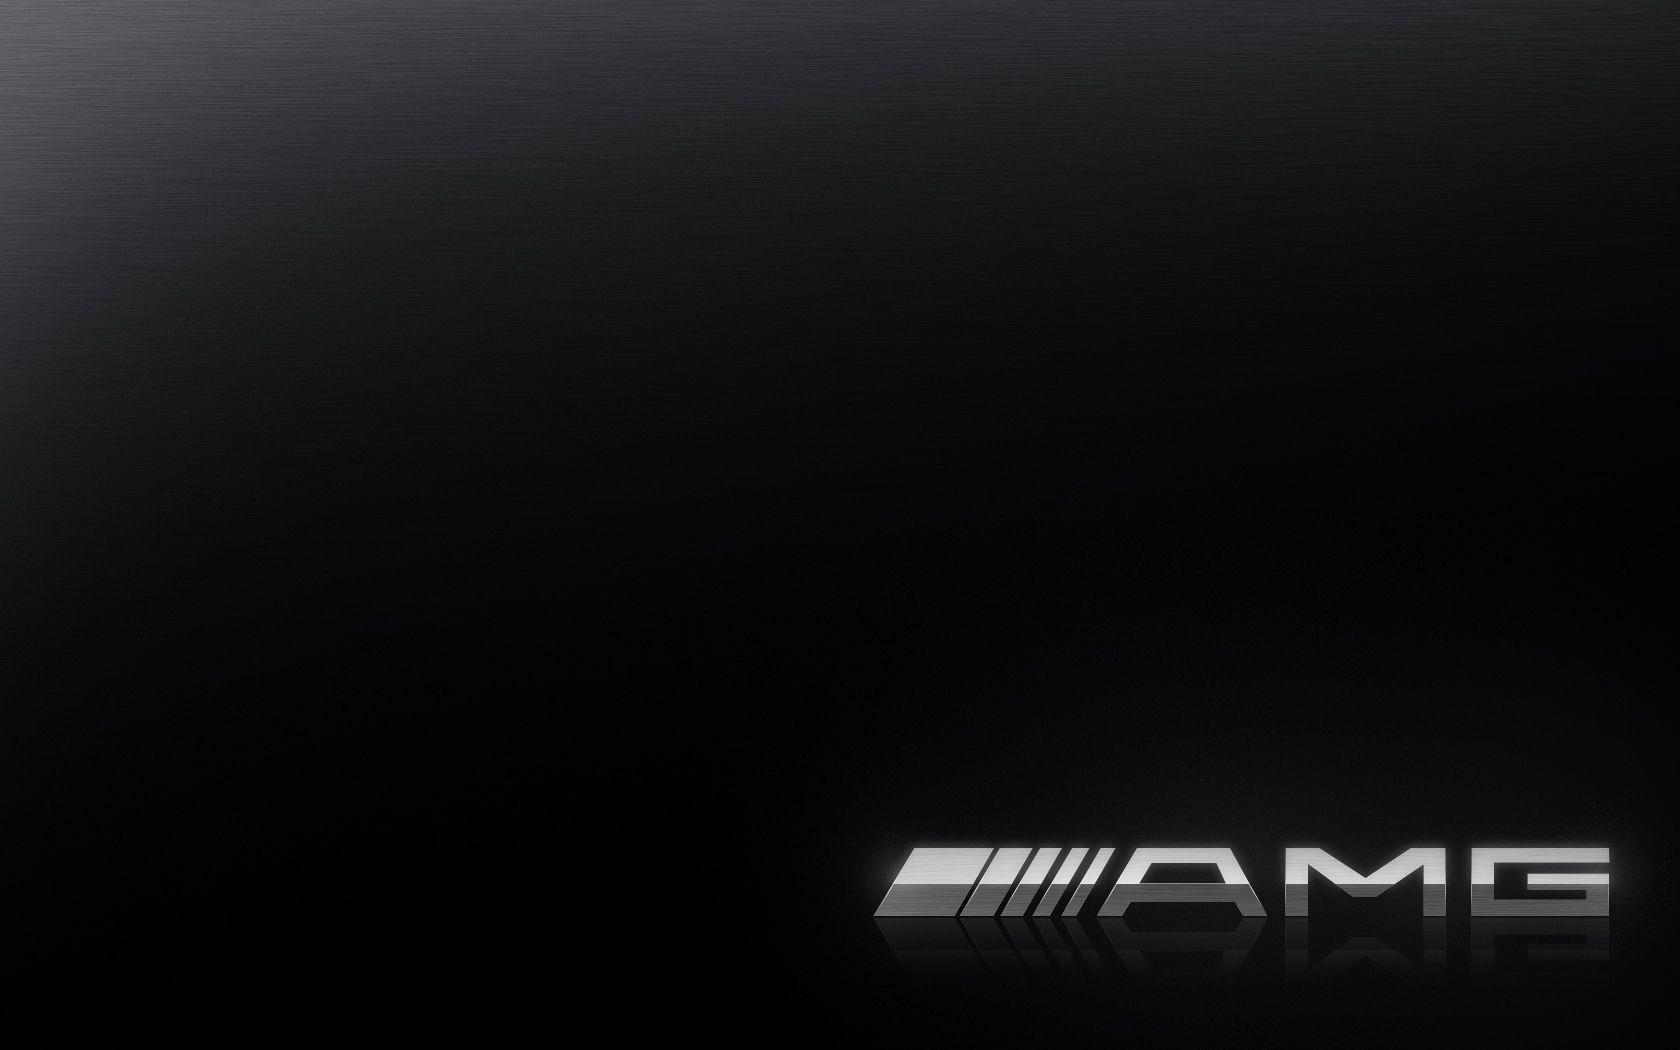 Mercedes AMG Wallpapers 1680x1050